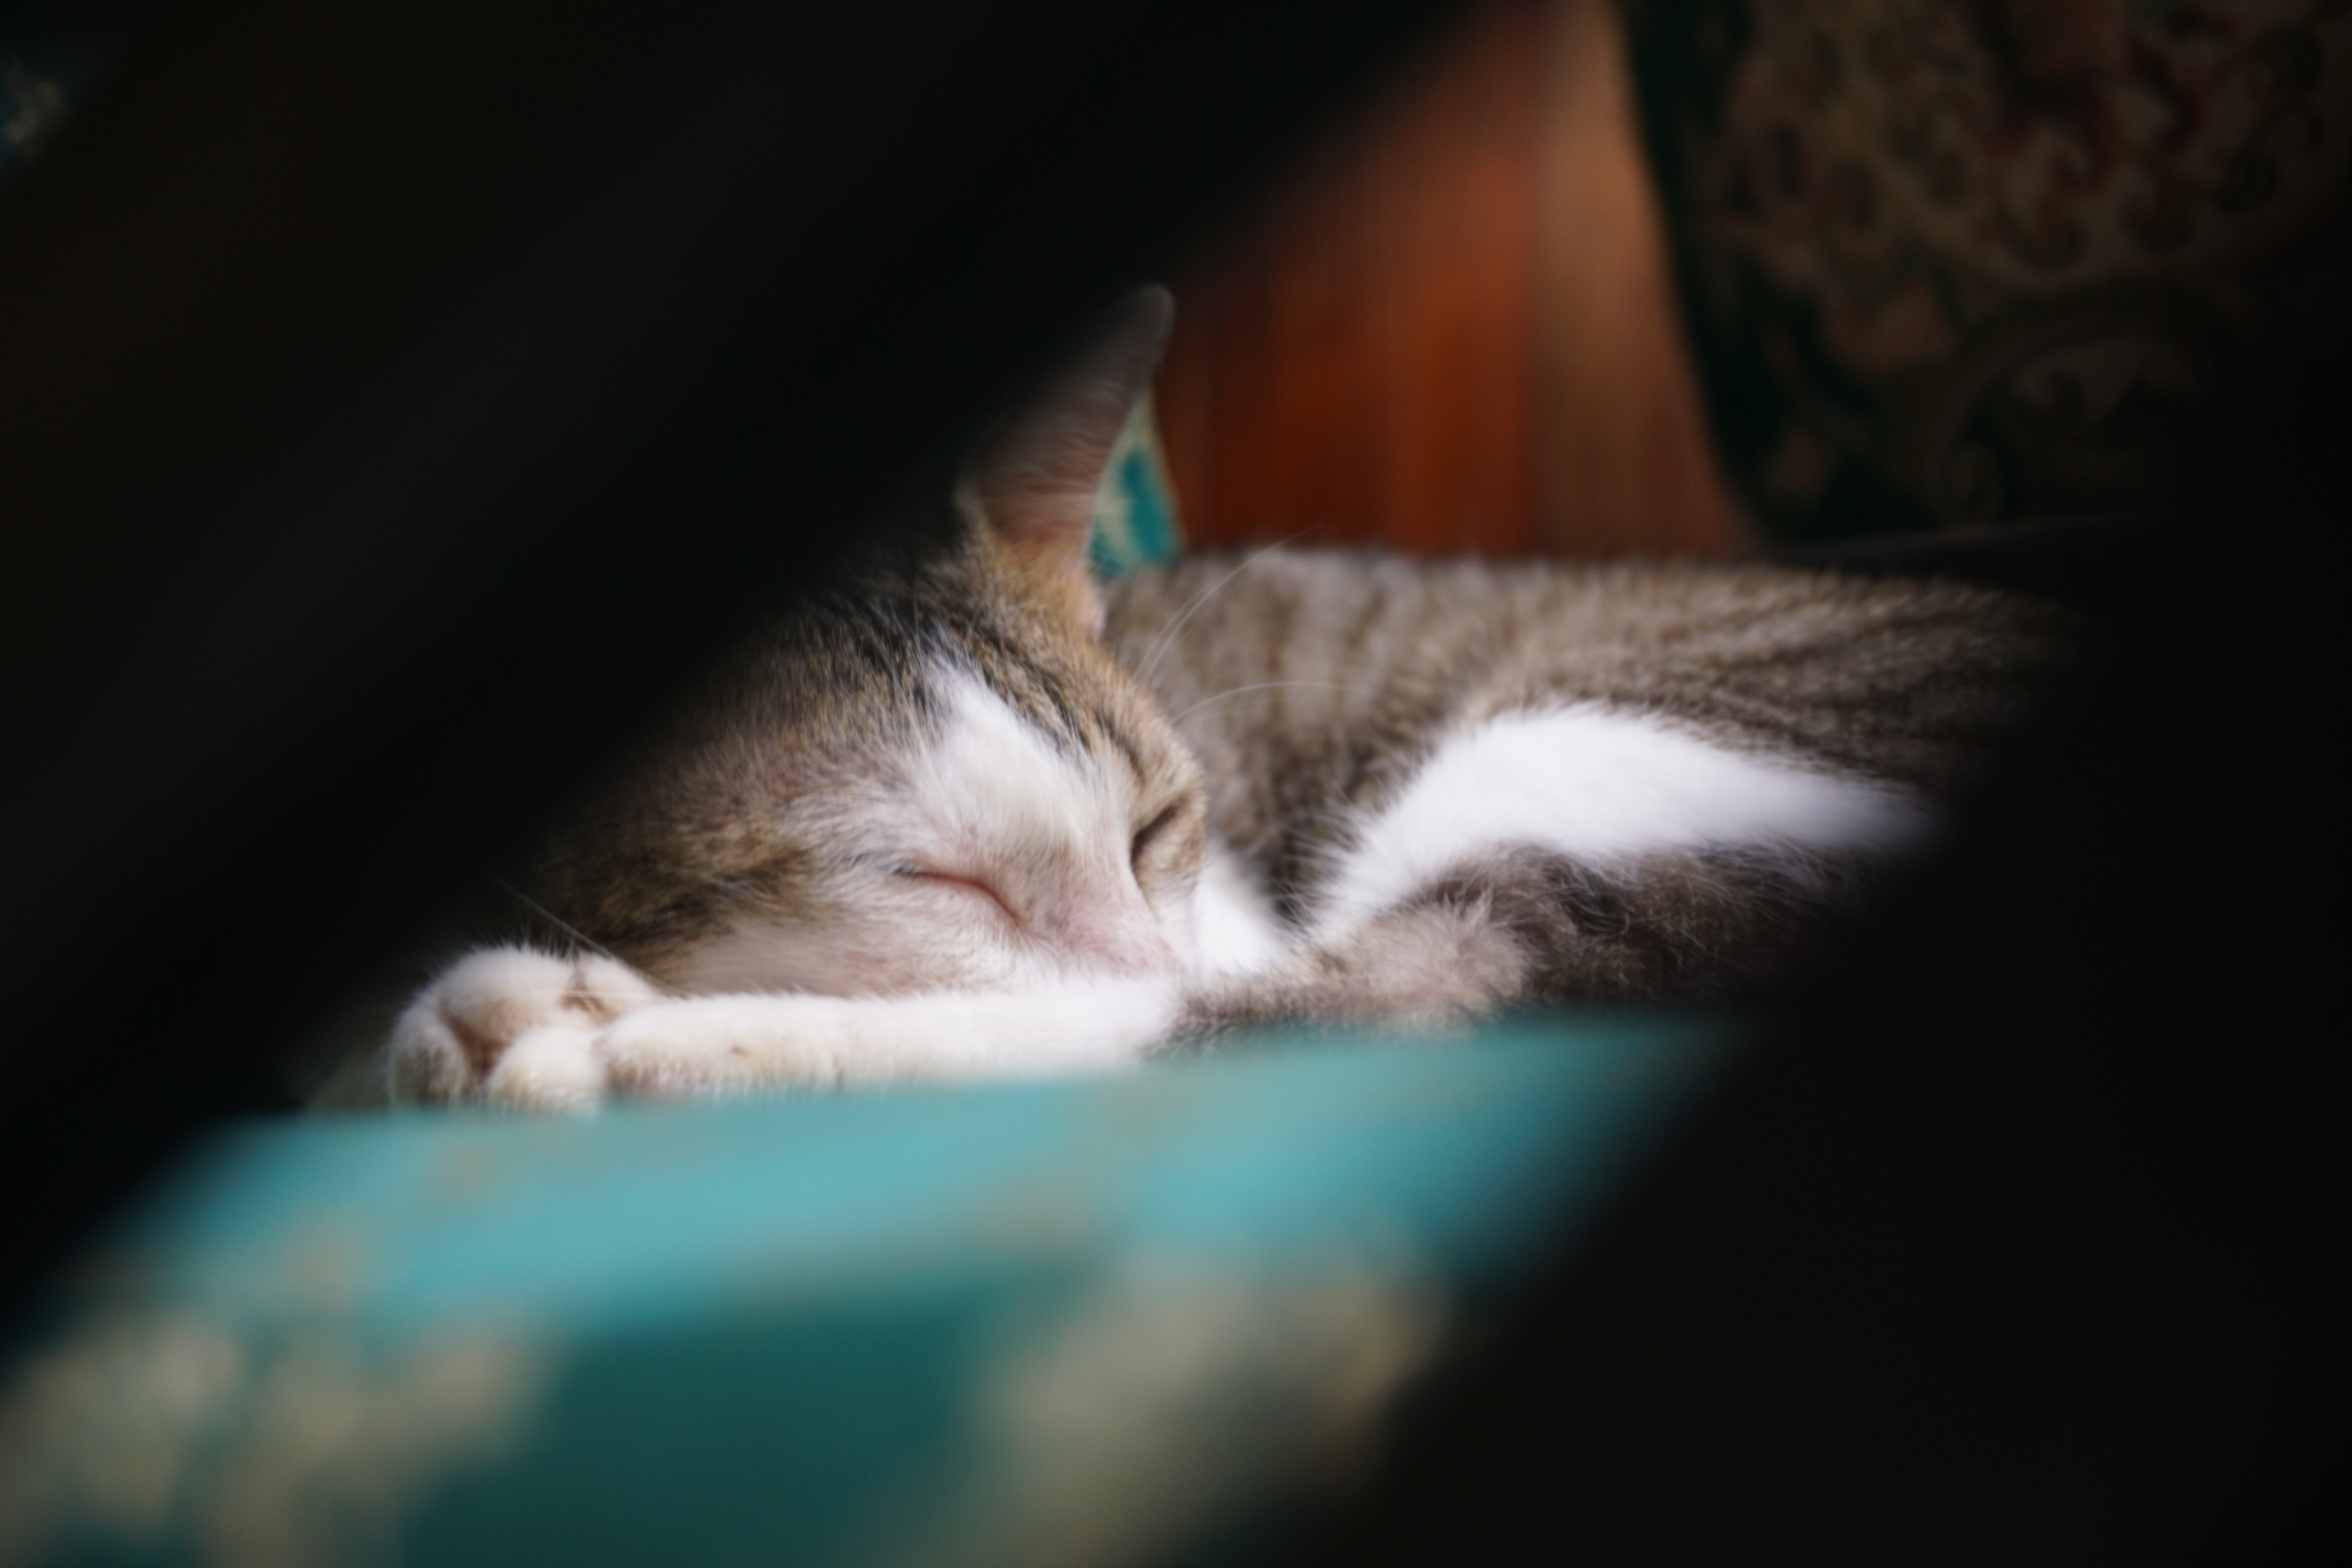 silver tabby cat lying on green textile